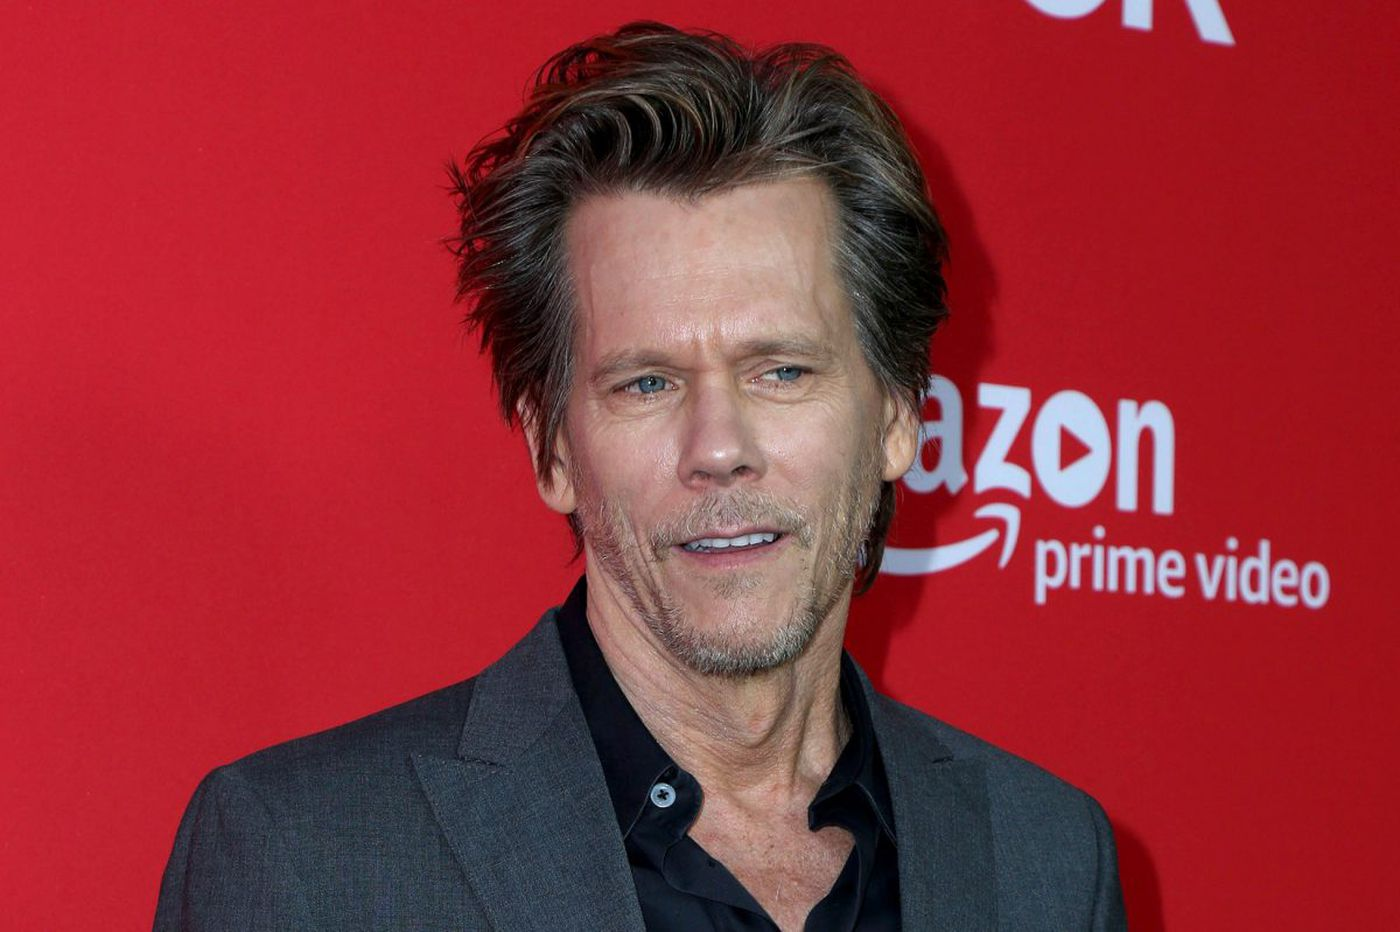 Kevin Bacon's new TV pilot is a Boston story, produced by Matt Damon and Ben Affleck